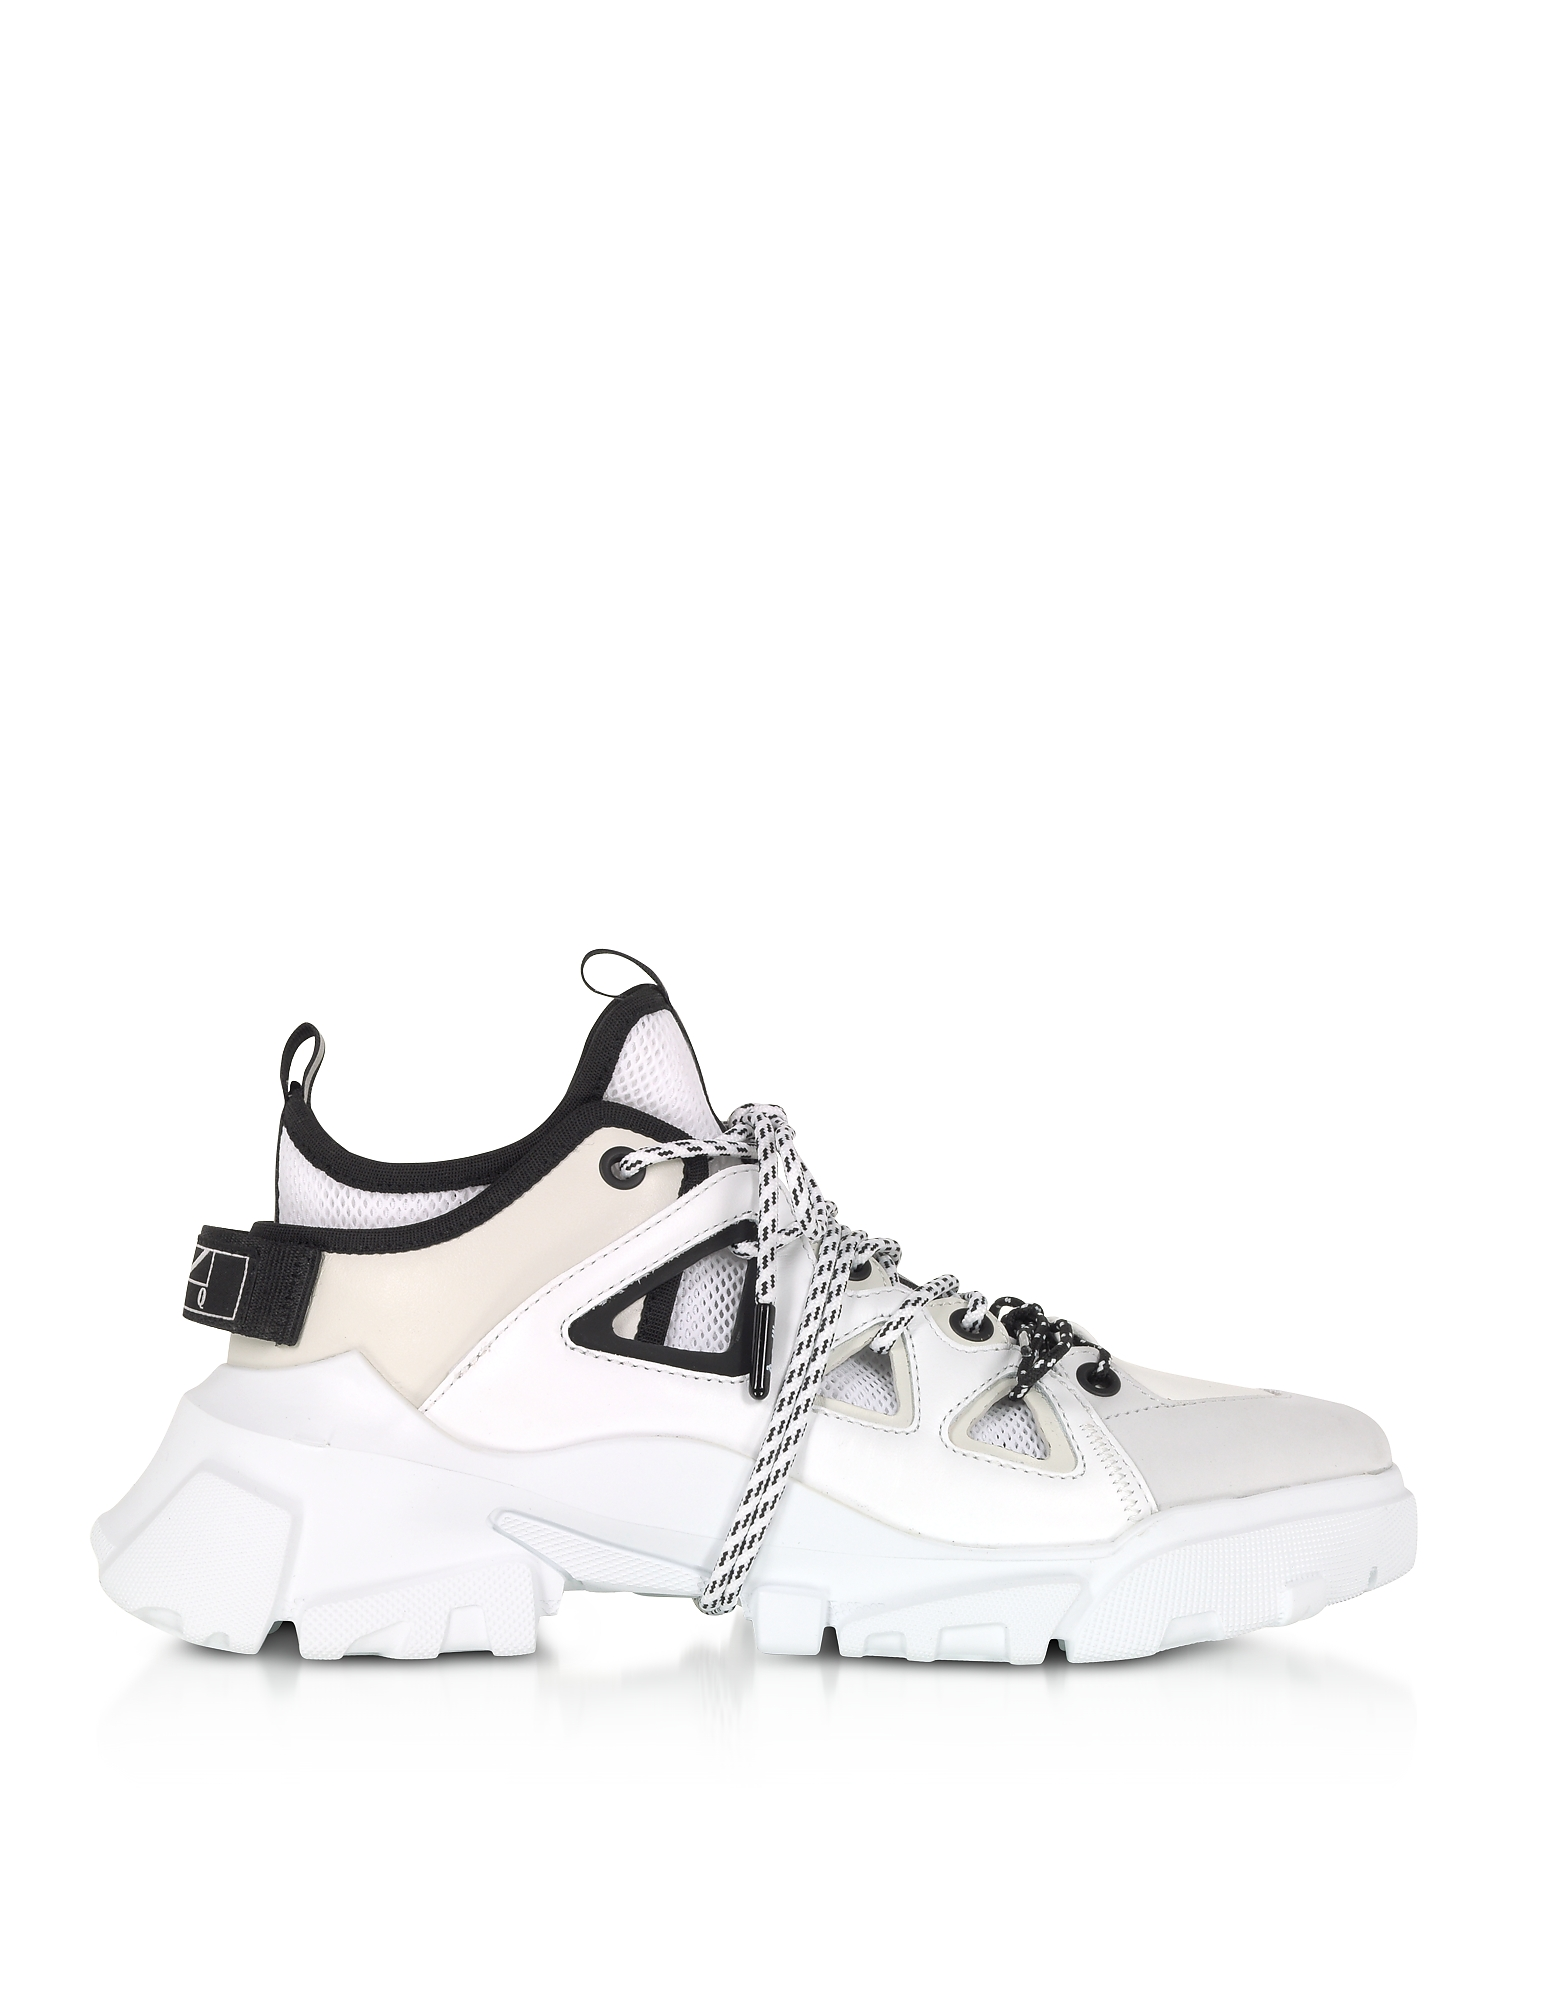 McQ Alexander McQueen Designer Shoes, Orbyt Mid Black, White & Off White Men's Sneakers